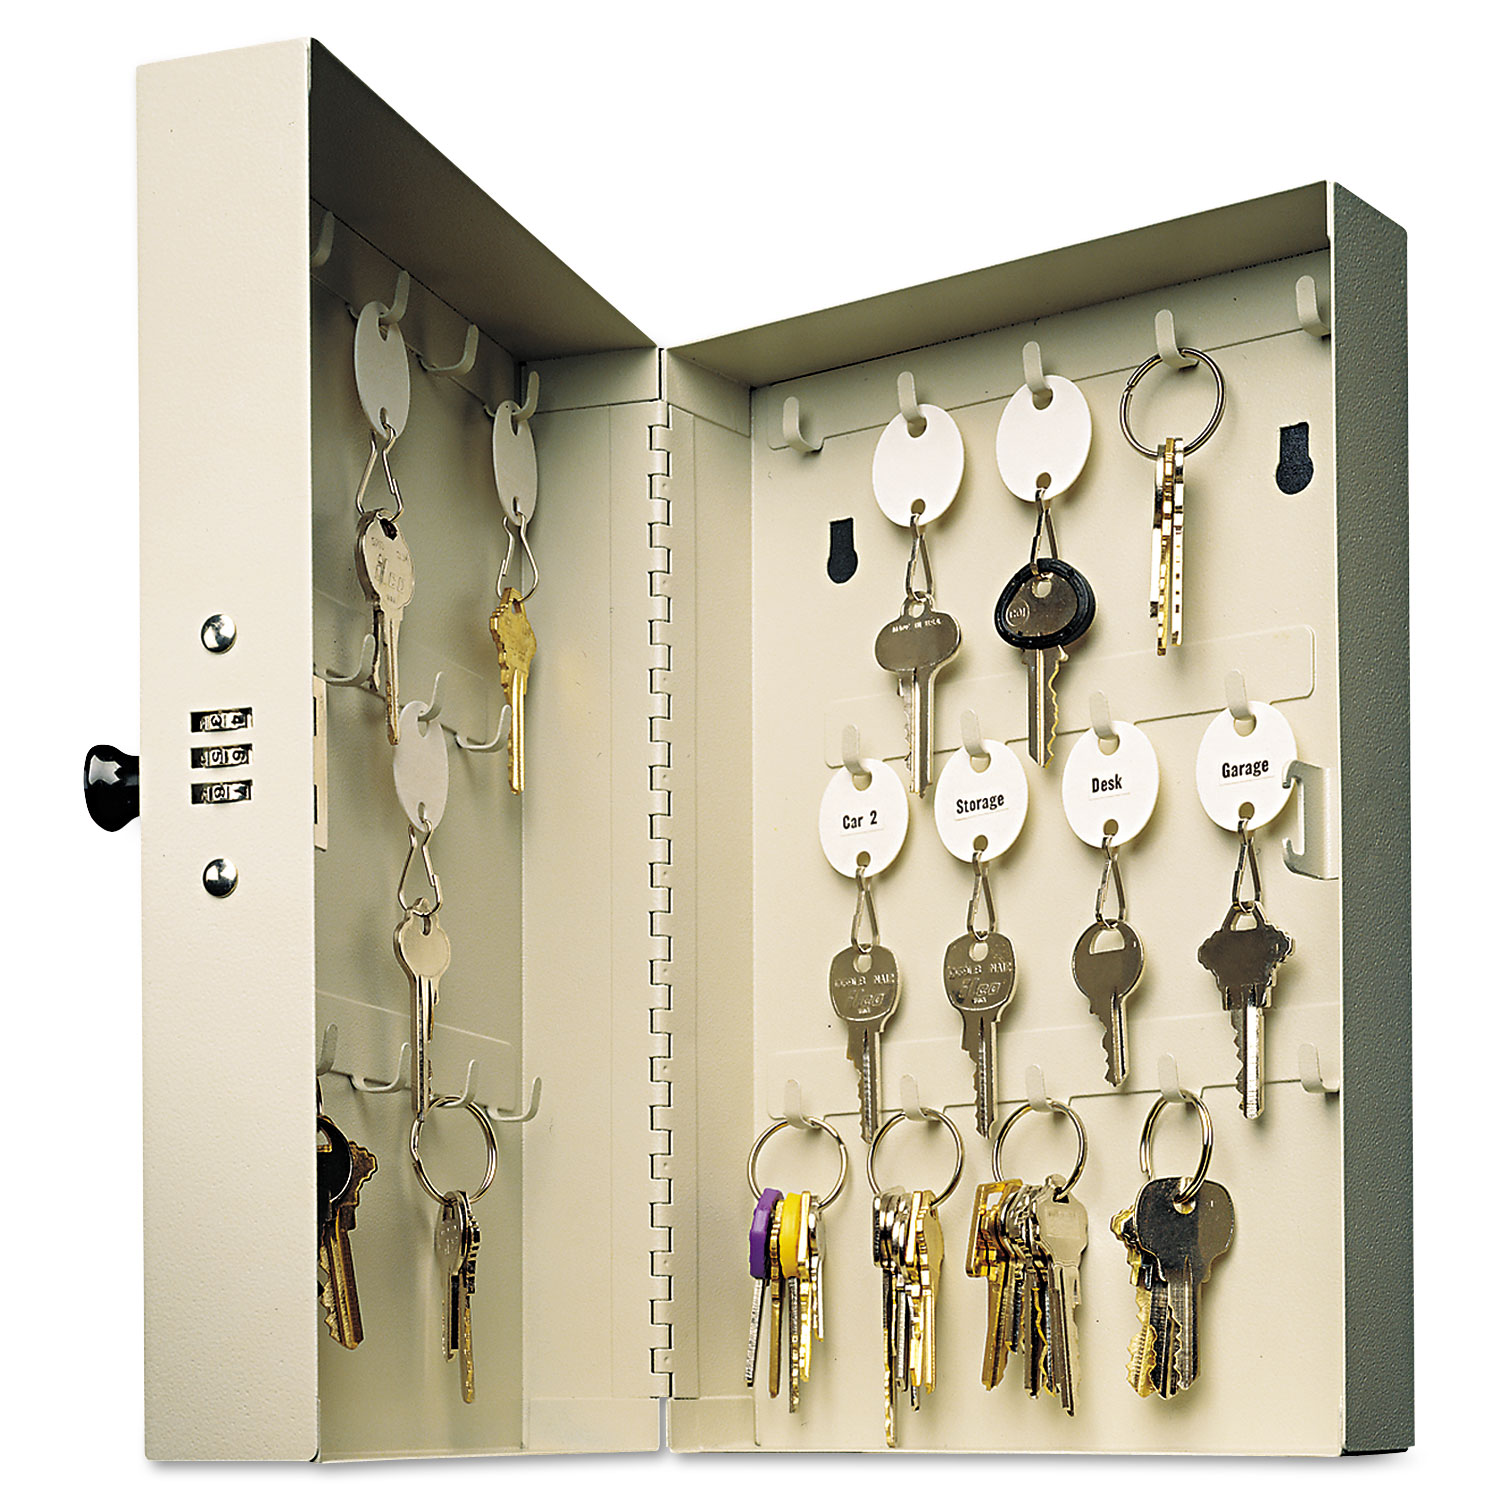 MMF201202889 Thumbnail 1 · MMF201202889 Thumbnail 2  sc 1 st  On Time Supplies & Hook-Style Key Cabinet by SteelMaster® MMF201202889 | OnTimeSupplies.com